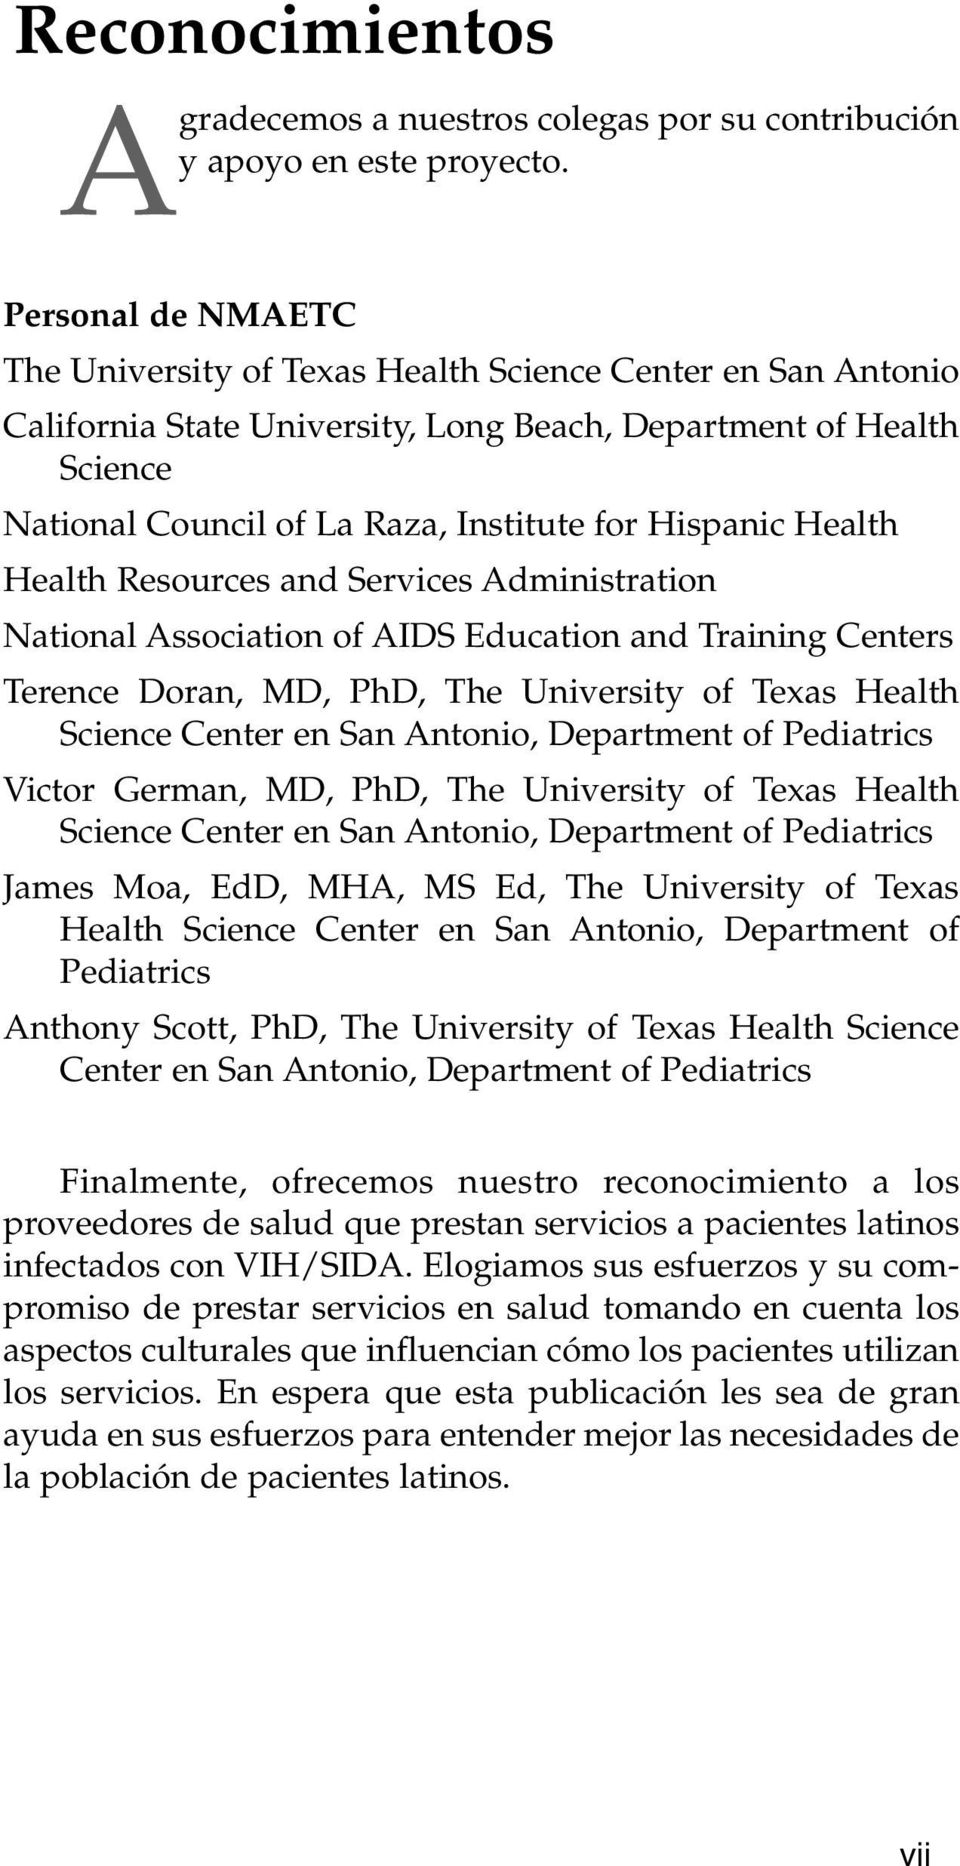 Hispanic Health Health Resources and Services Administration National Association of AIDS Education and Training Centers Terence Doran, MD, PhD, The University of Texas Health Science Center en San